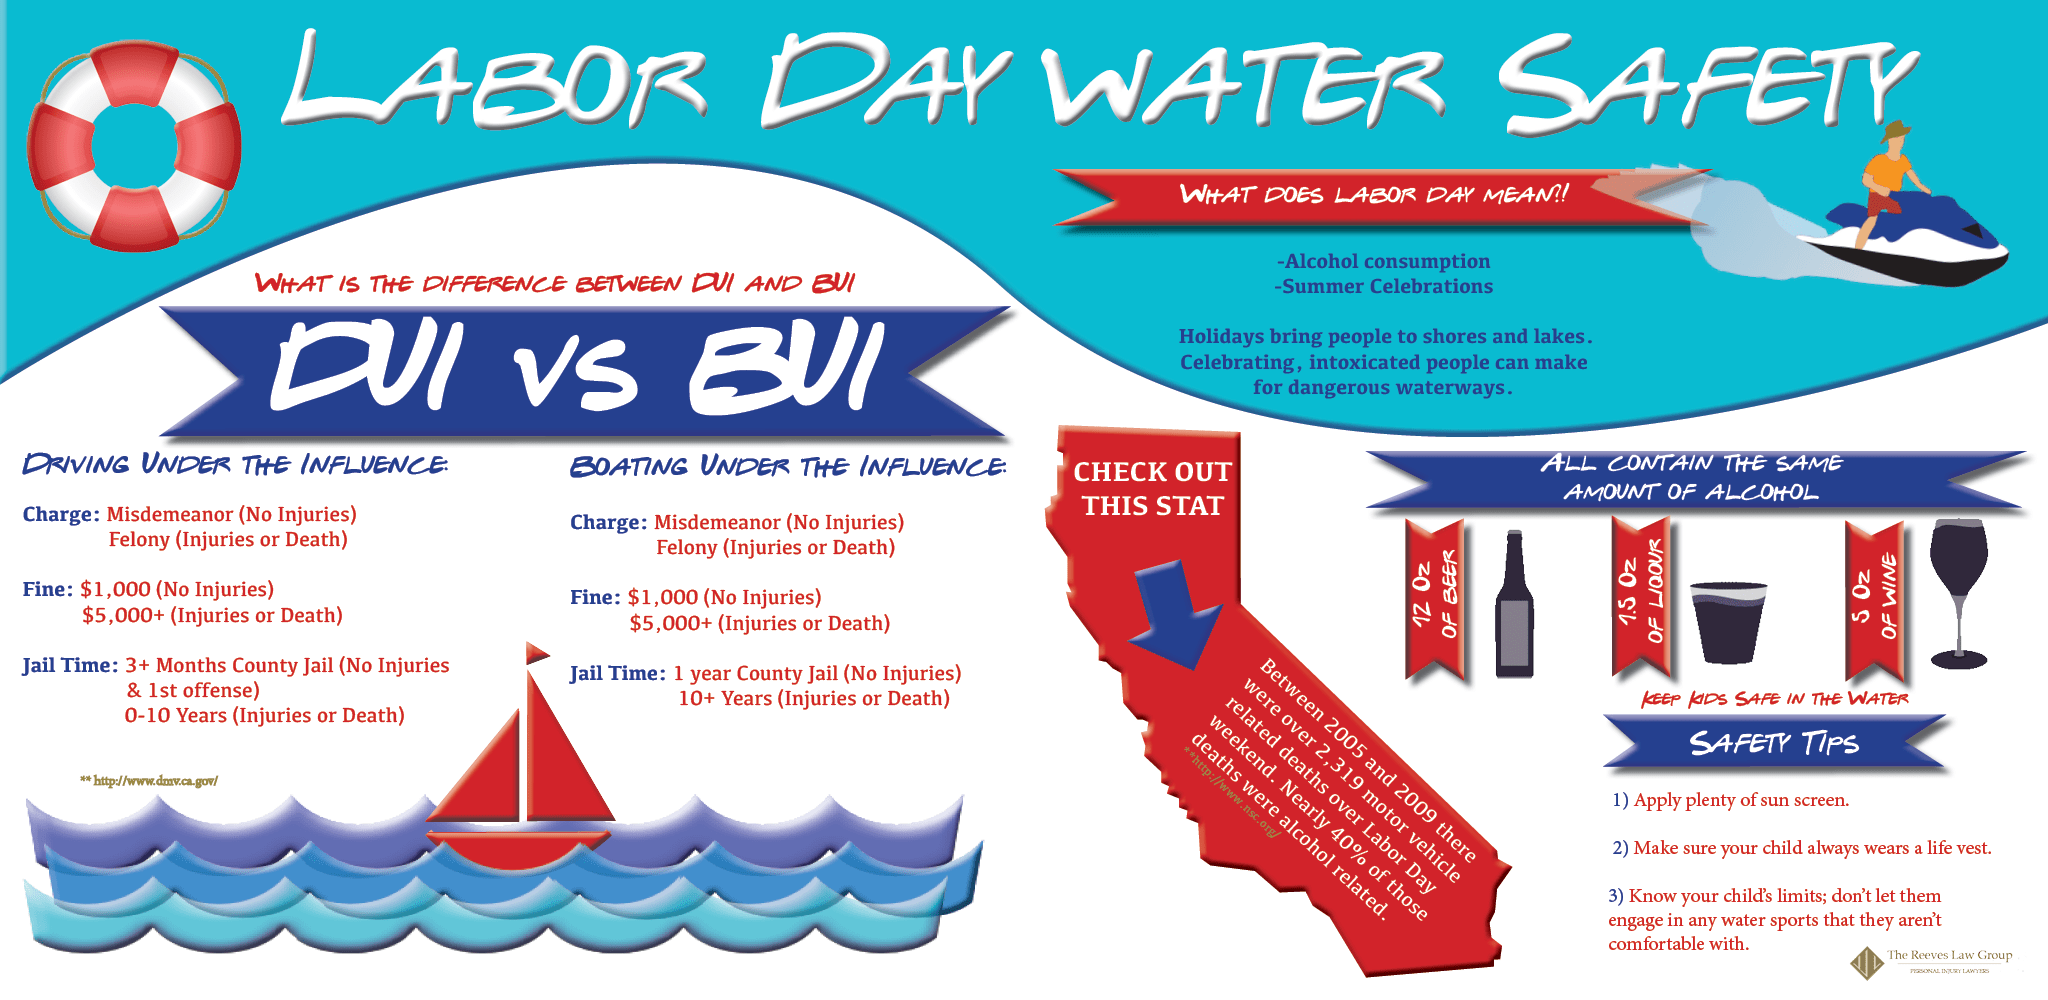 Labor Safety Labor Day Water Safety Infographic The Reeves Law Group